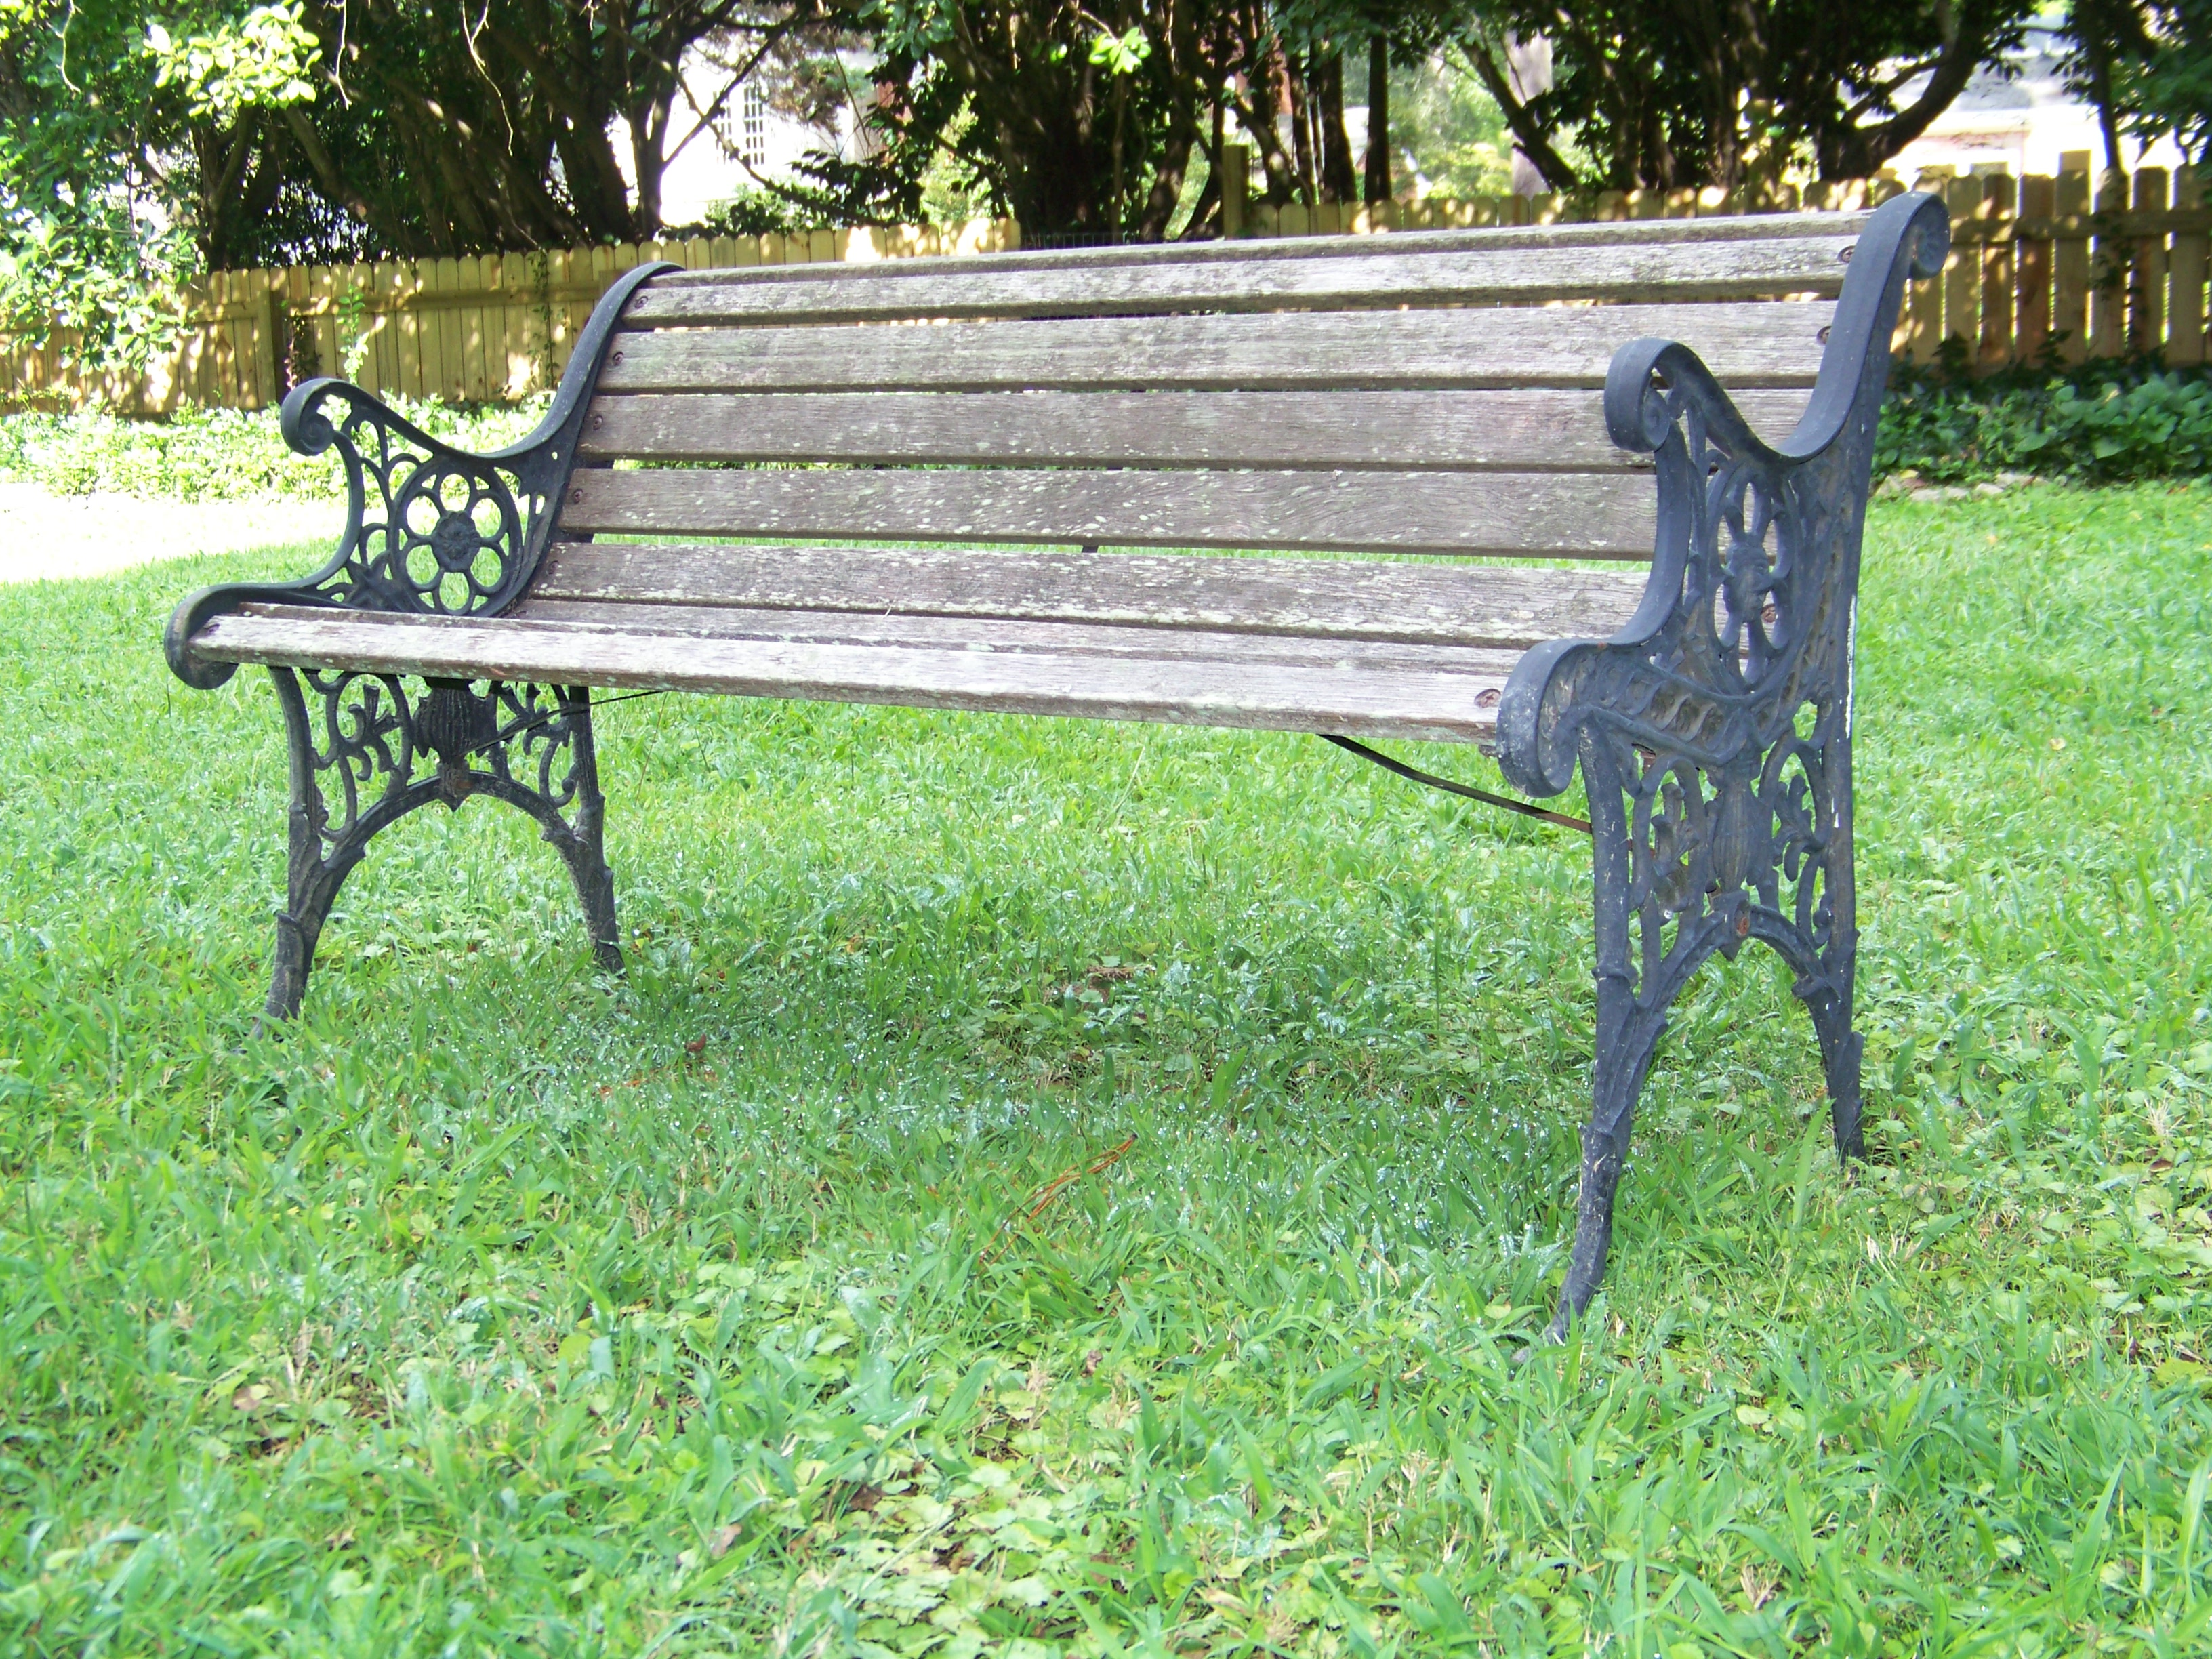 Ordinary Painted Benches Outdoor Part - 4: Bench Before · Painted Garden ...